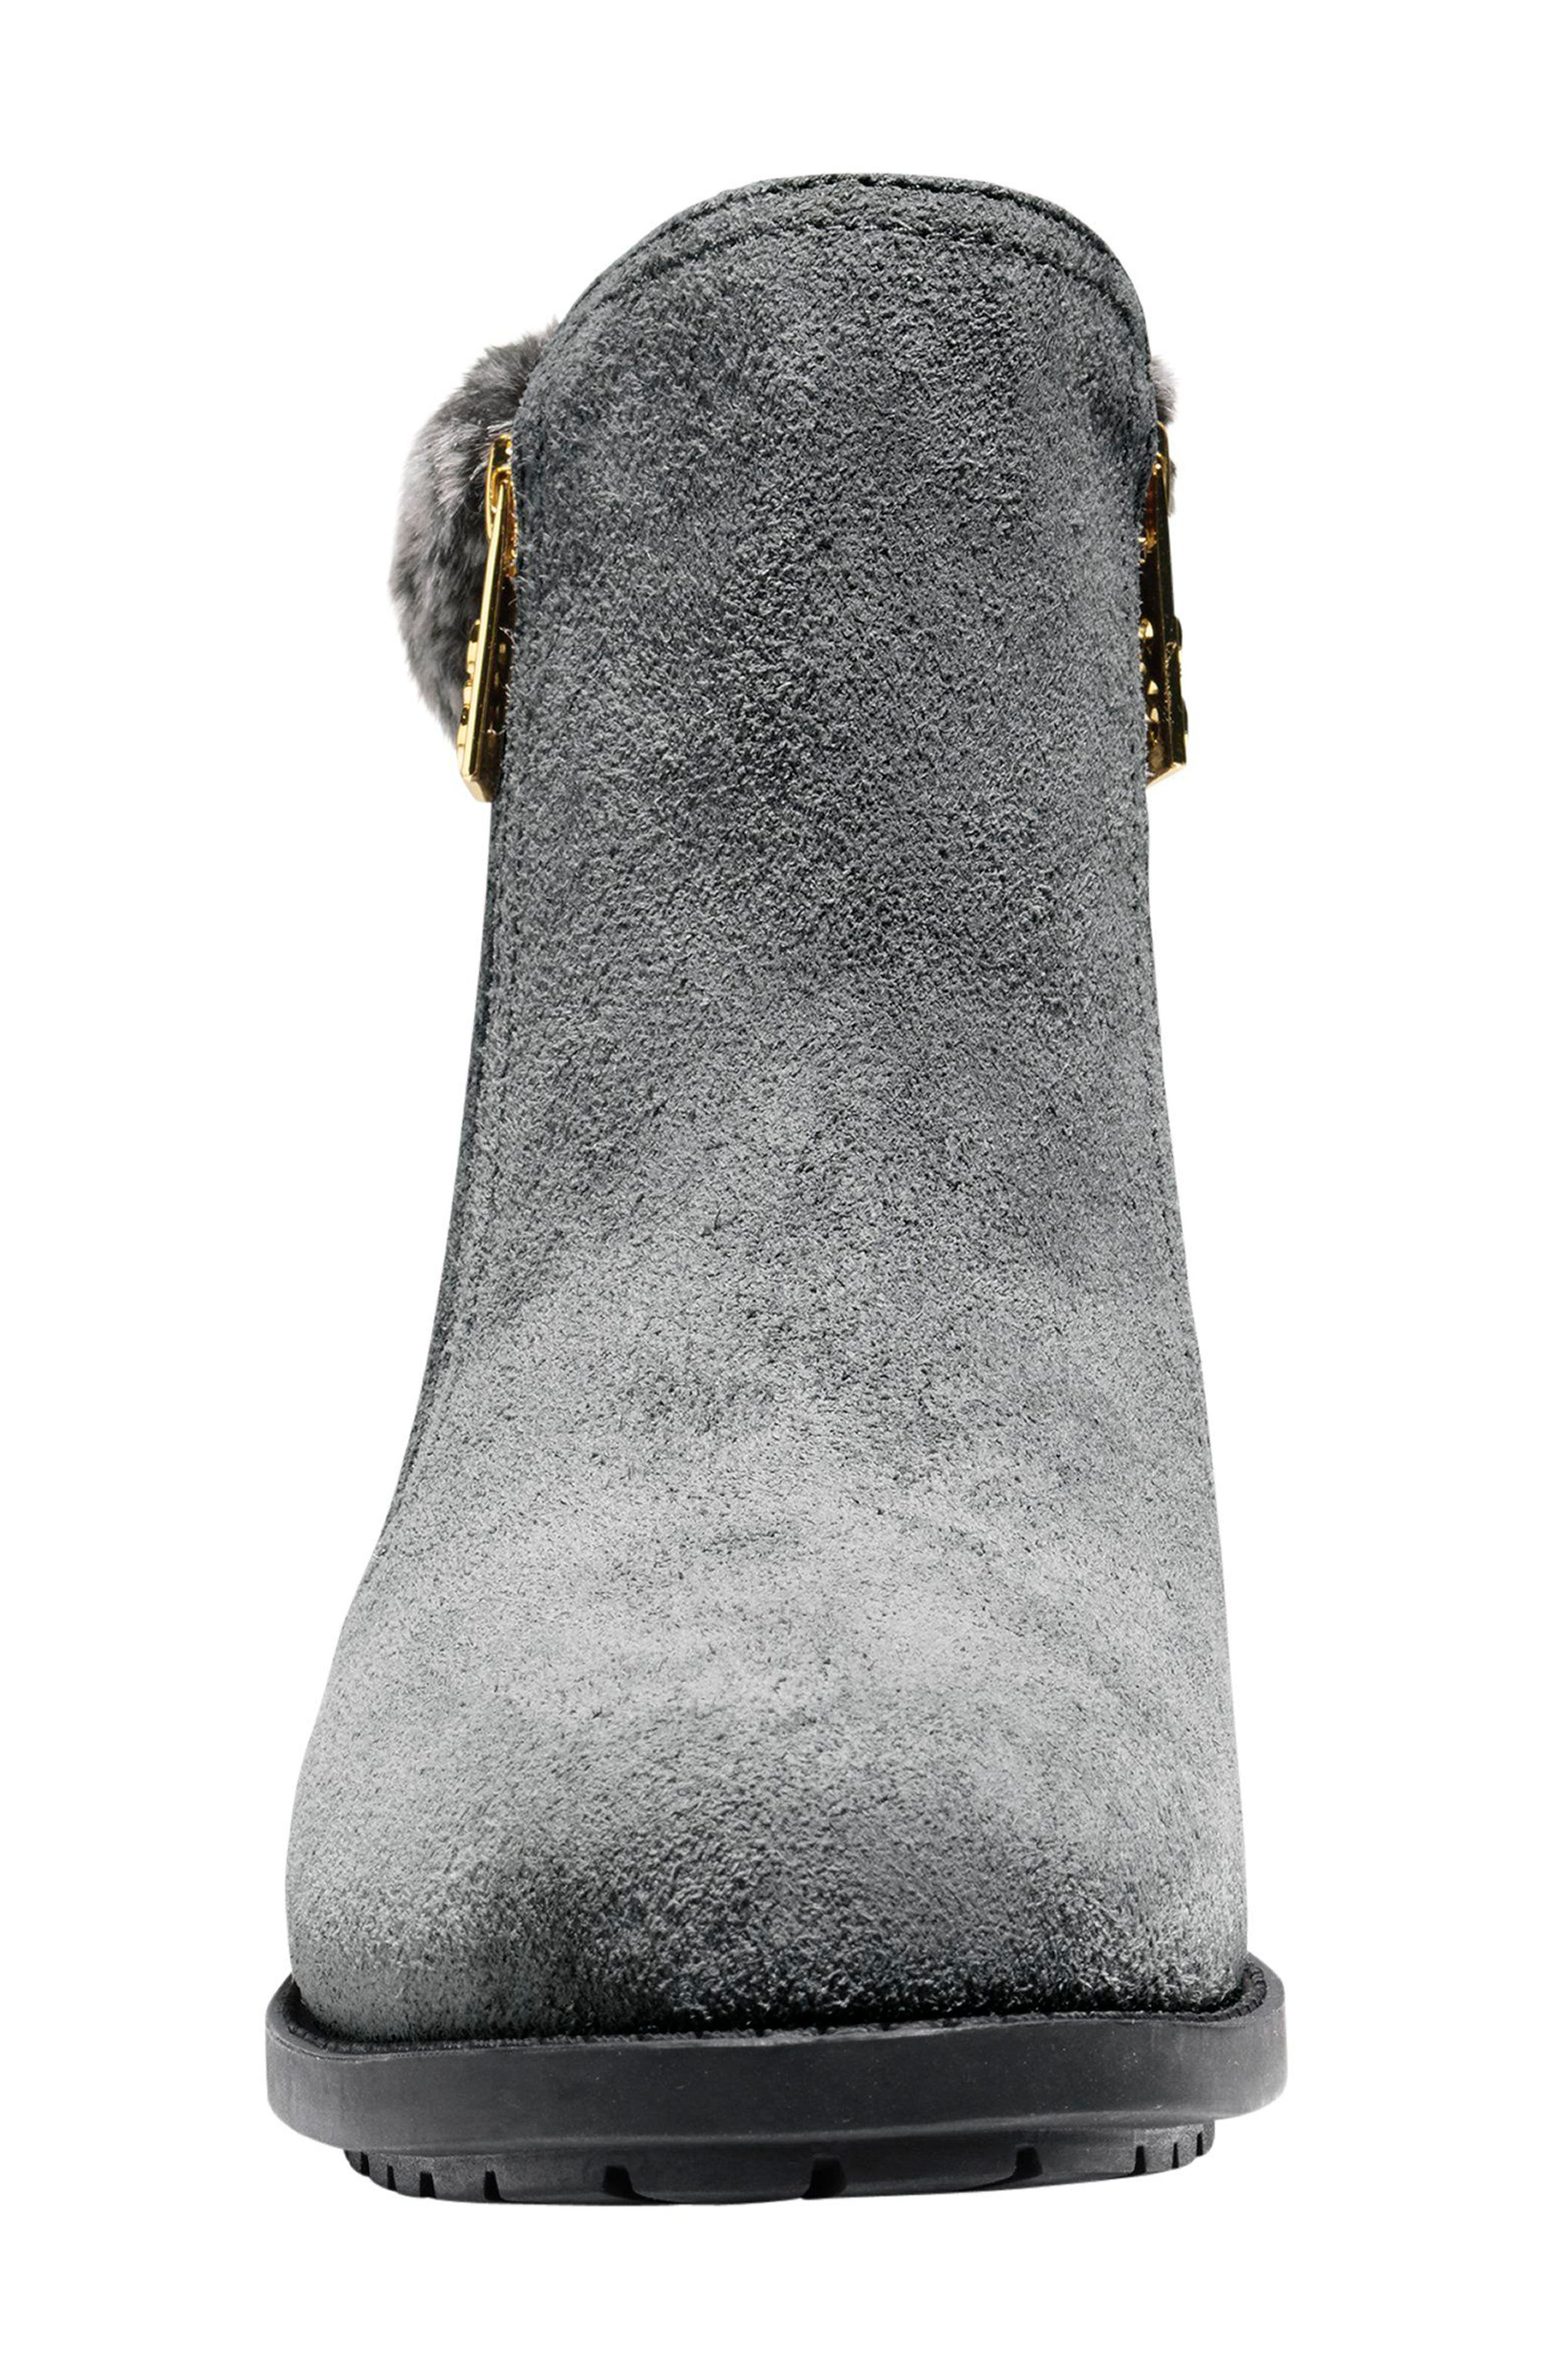 Quinney Waterproof Bootie with Faux Shearling Trim,                             Alternate thumbnail 4, color,                             Castlerock Waterproof Suede